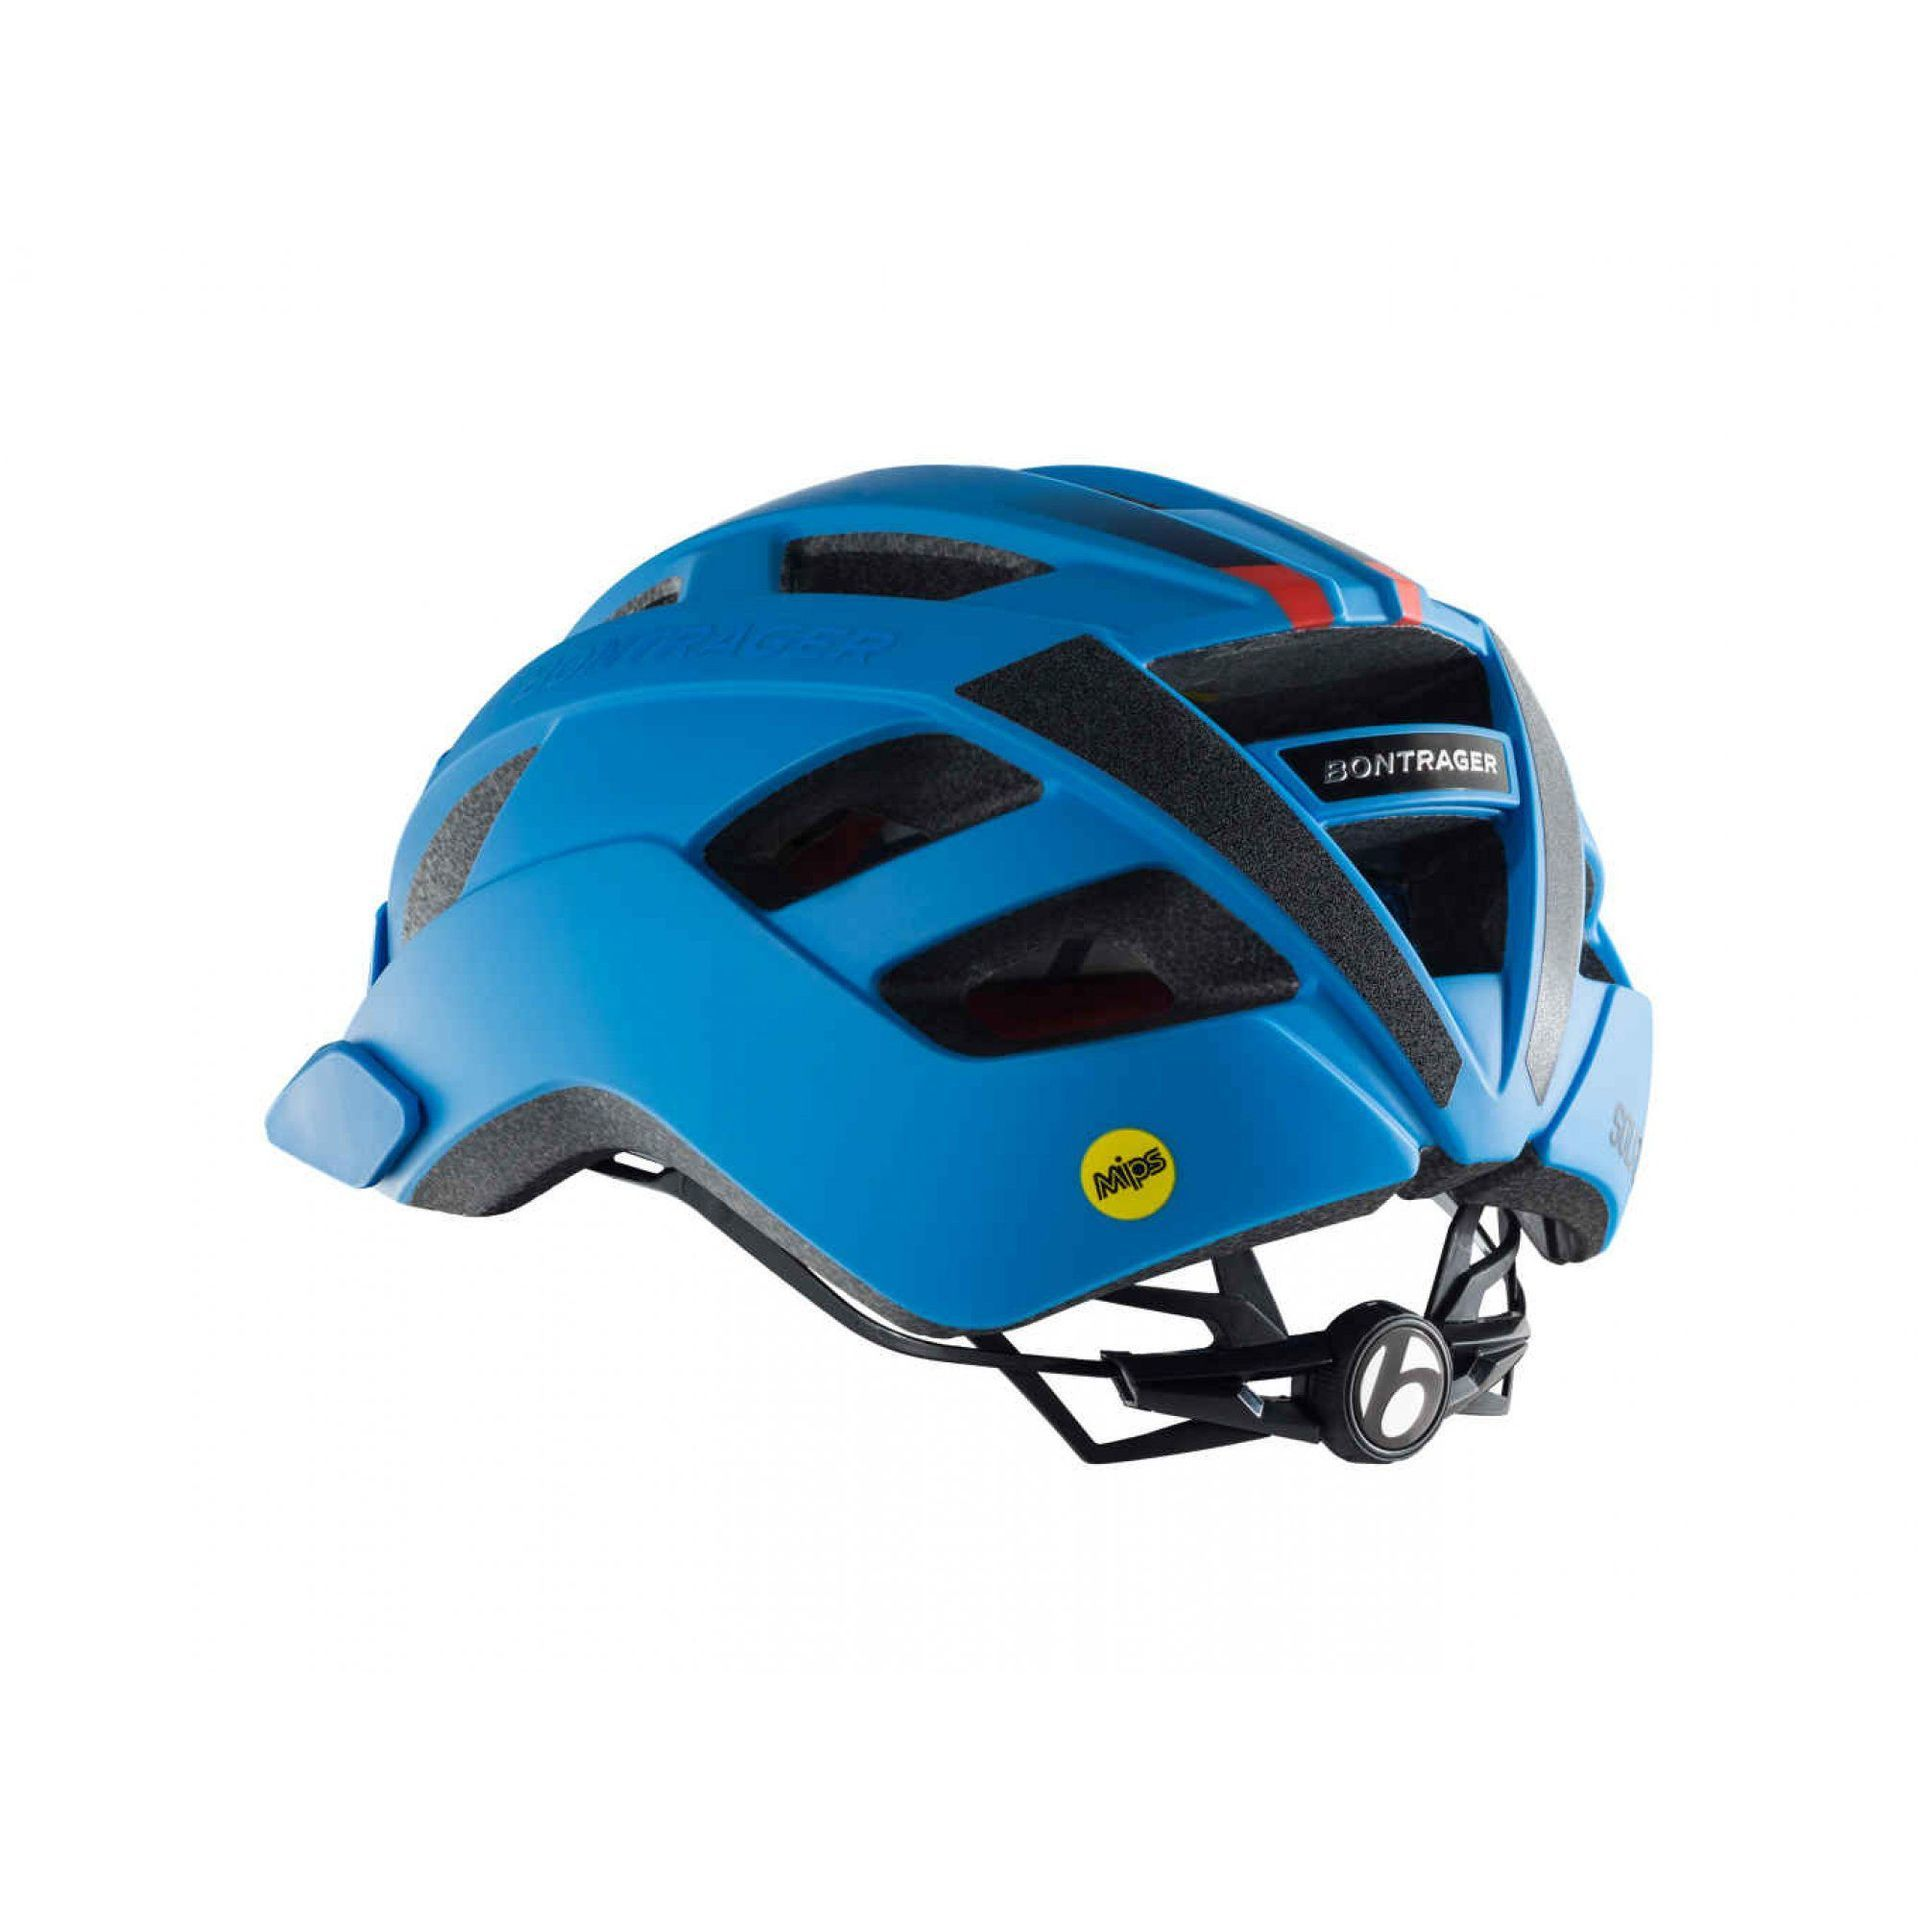 KASK ROWEROWY BONTRAGER SOLSTICE MIPS YOUTH 552071 2